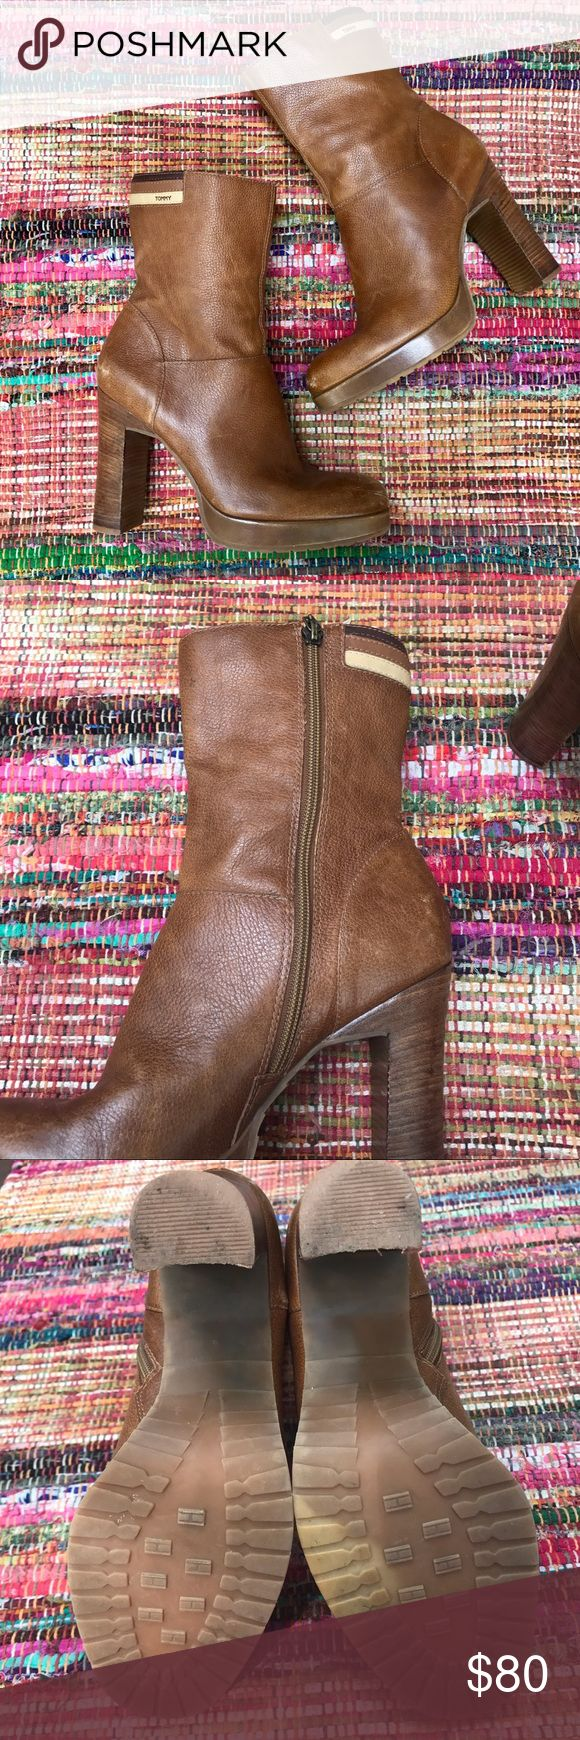 "Vintage 60's Tommy Hilfiger boots Ankle height tan leather boots zip up the side heel is 4"" - shoes some signs of ware but can be repaired - made in Brazil Tommy Hilfiger Shoes Ankle Boots & Booties"